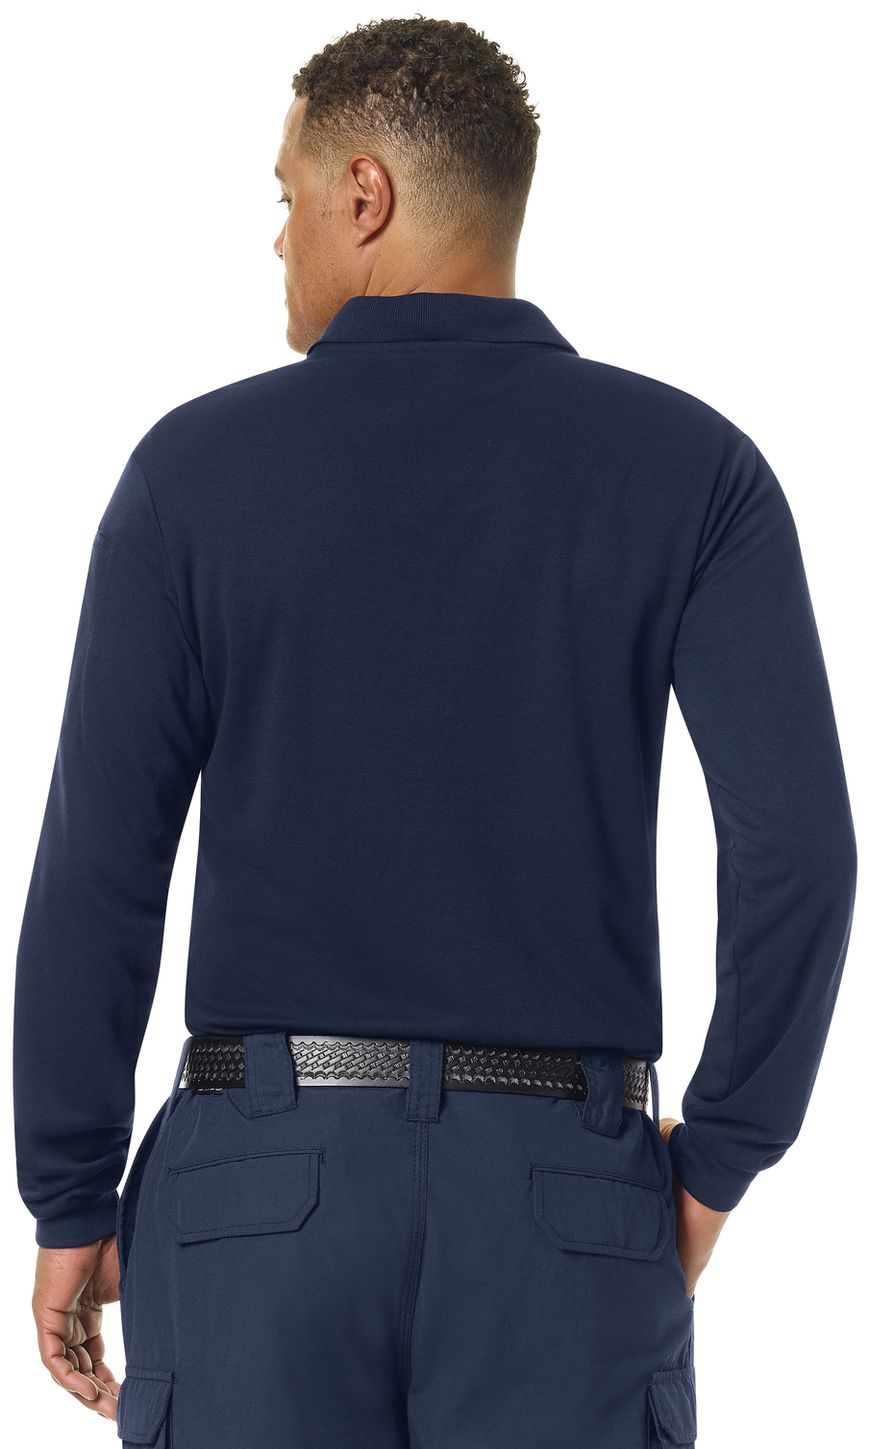 Workrite FR Polo Shirt FT20 Long Sleeve Fire Station Wear Navy Example Back